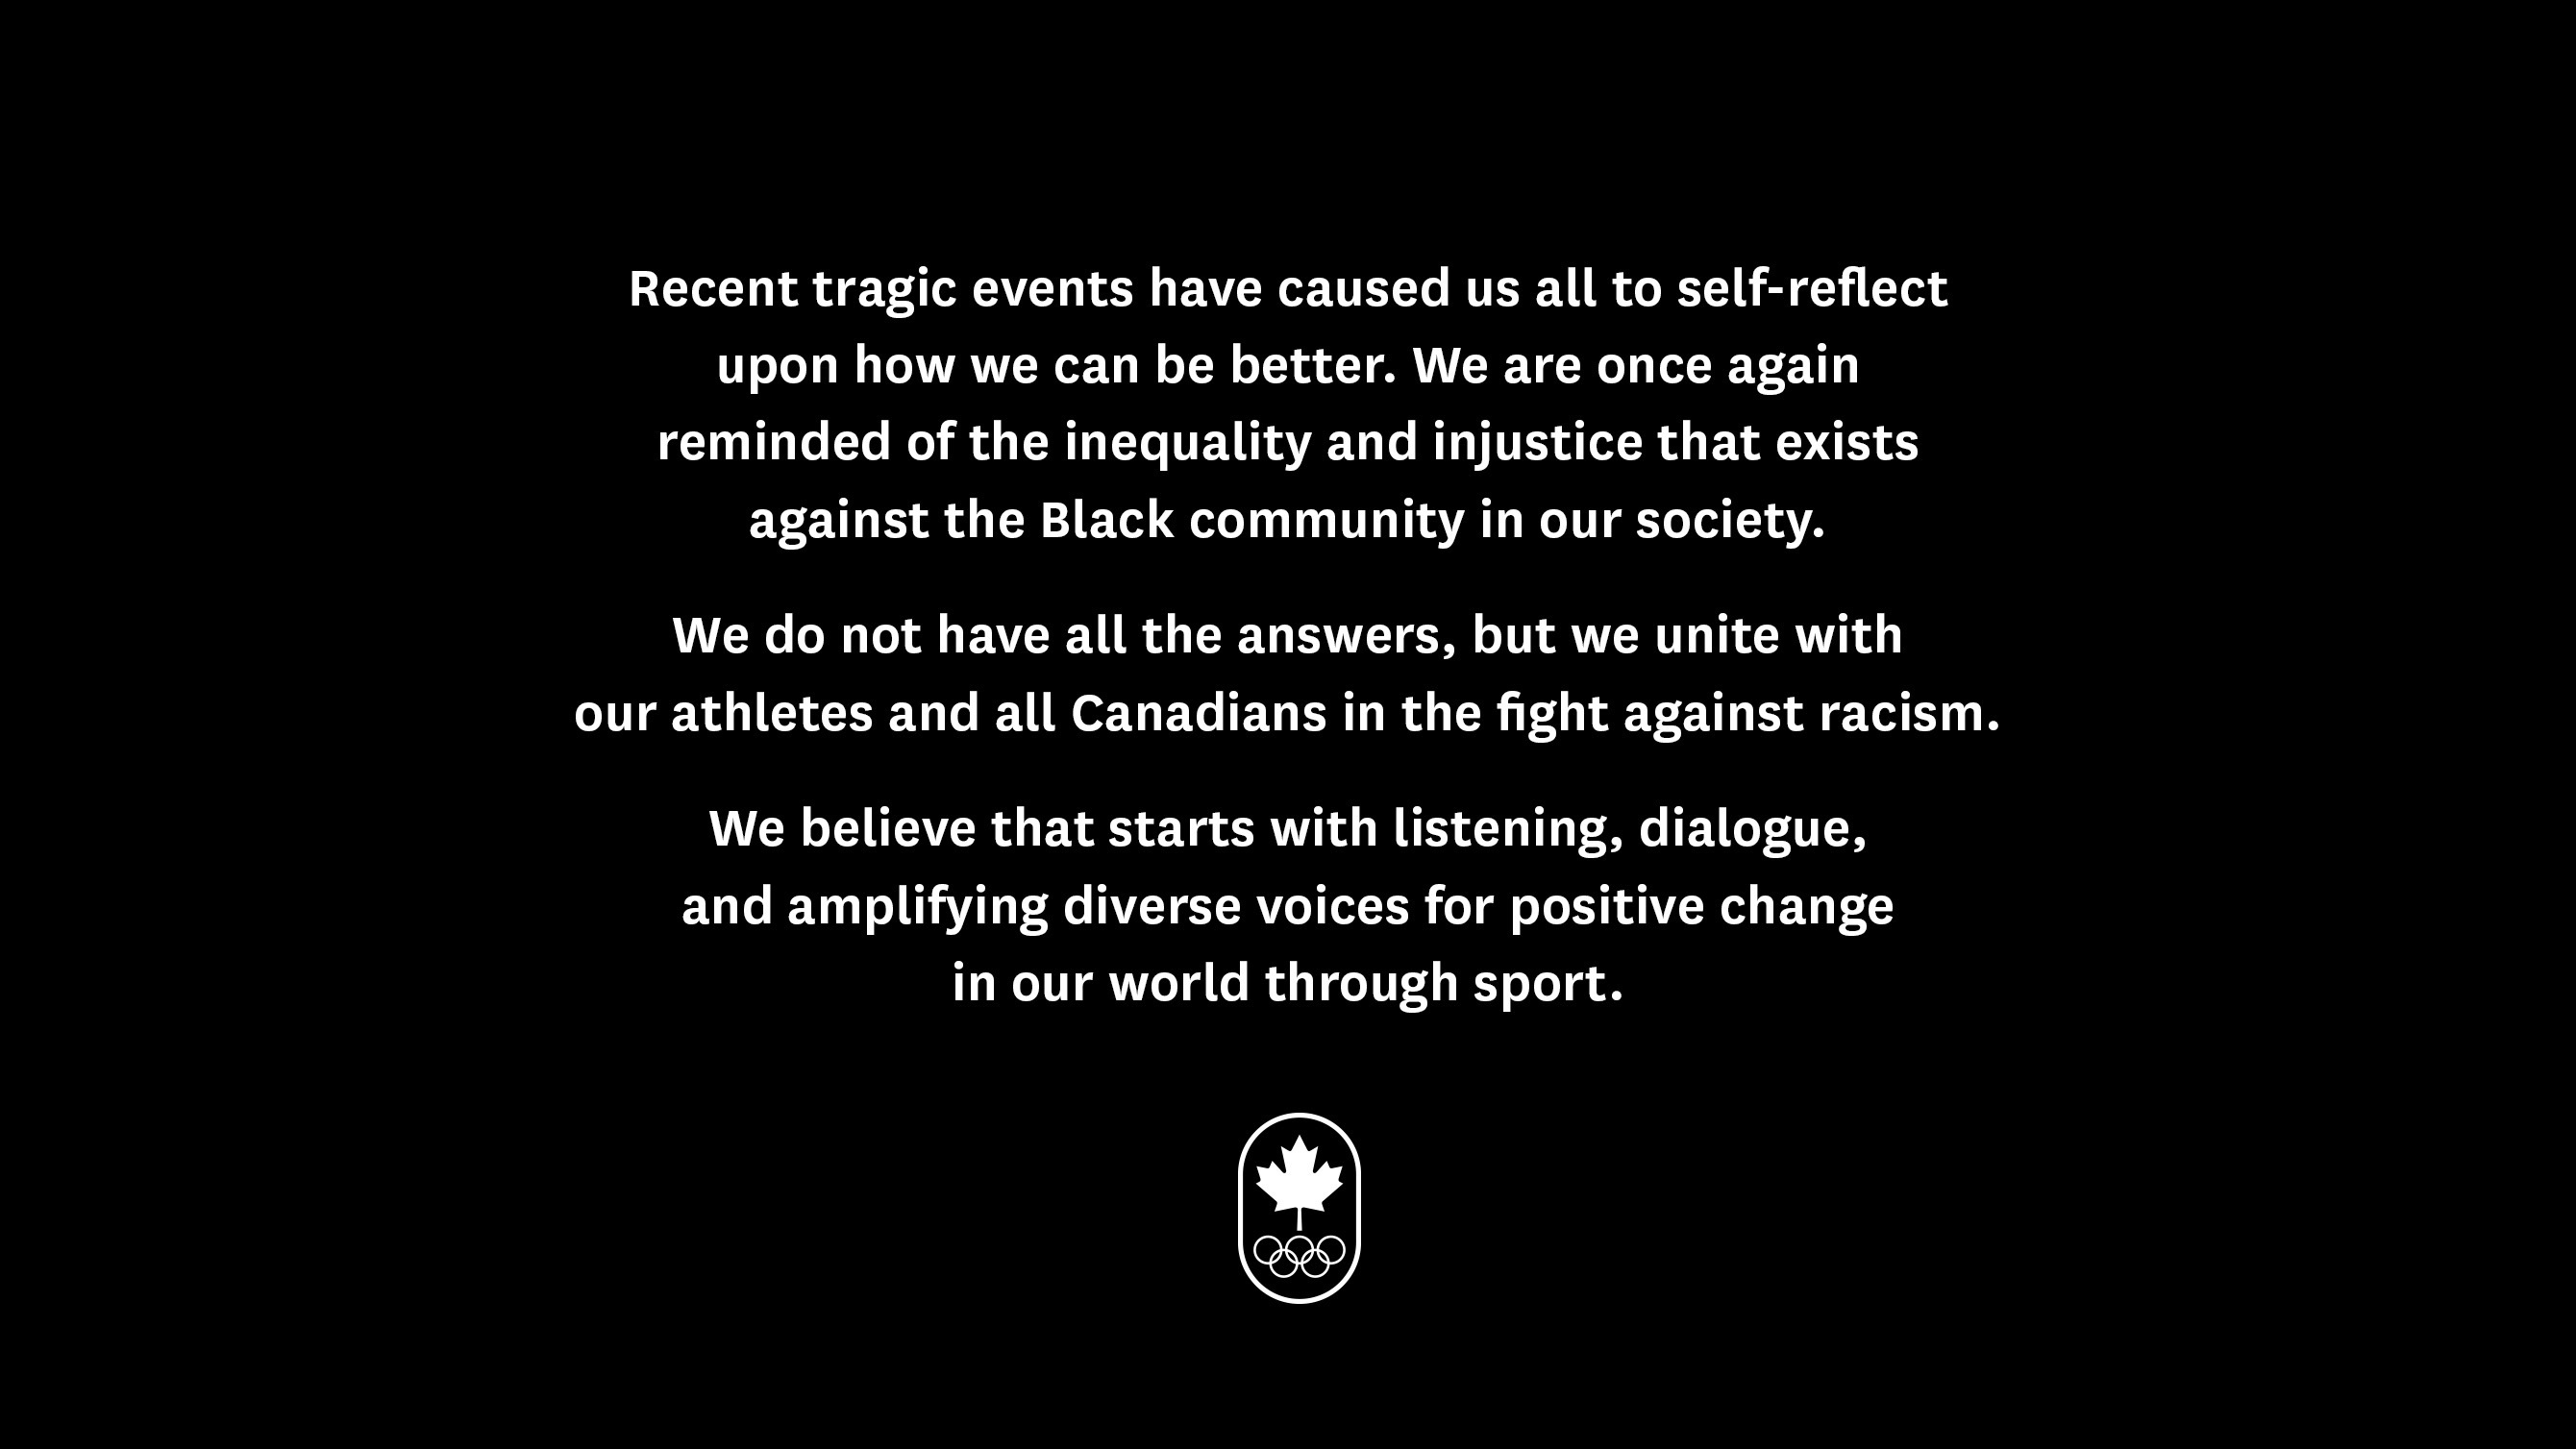 Recent tragic events have caused us all to self-reflect upon how we can be better. We are once again reminded of the inequality and injustice that exists against the Black community in our society. We do not have all the answers, but we unite with our athletes and all Canadians in the fight against racism. We believe that starts with listening, dialogue, and amplifying diverse voices for positive change in our world through sport.